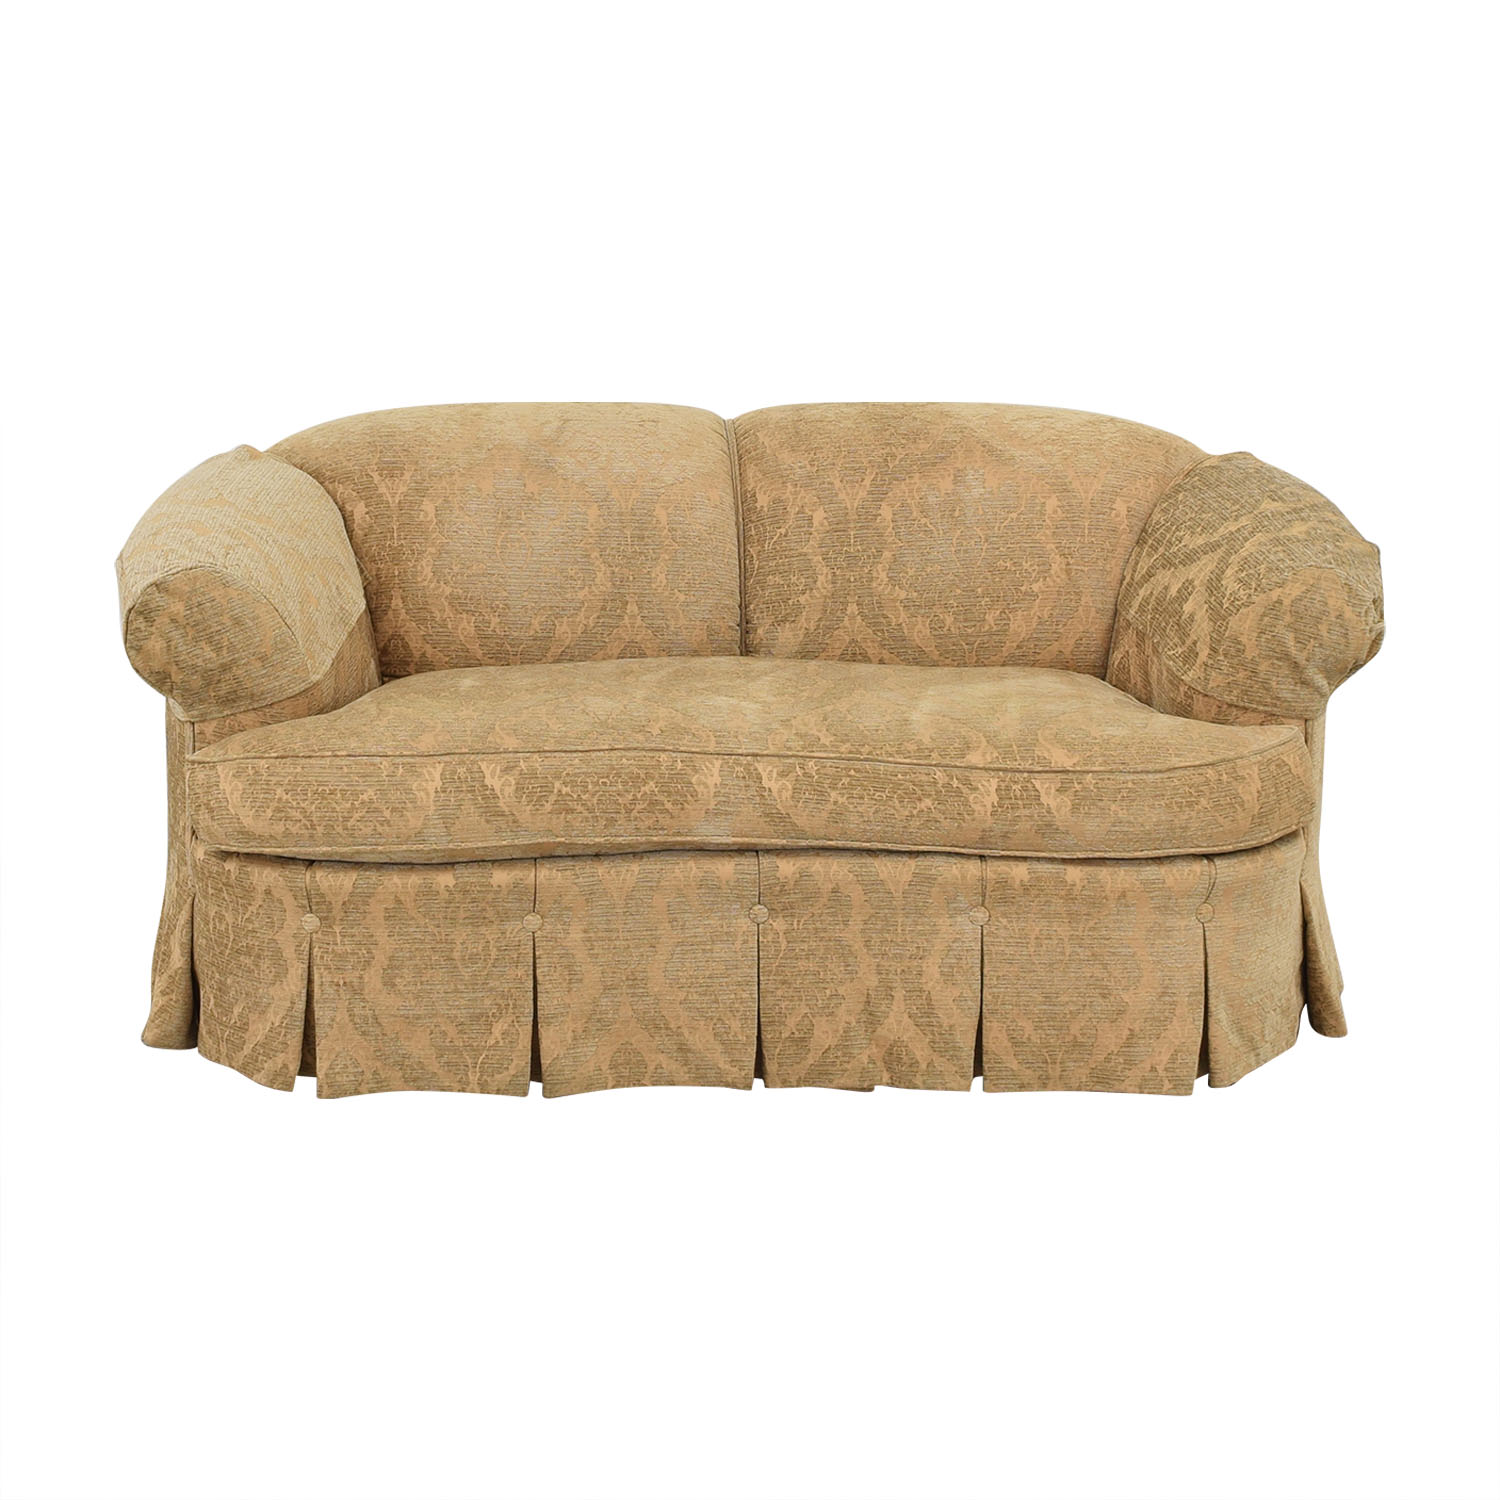 Kravet Kravet Slipcovered Loveseat